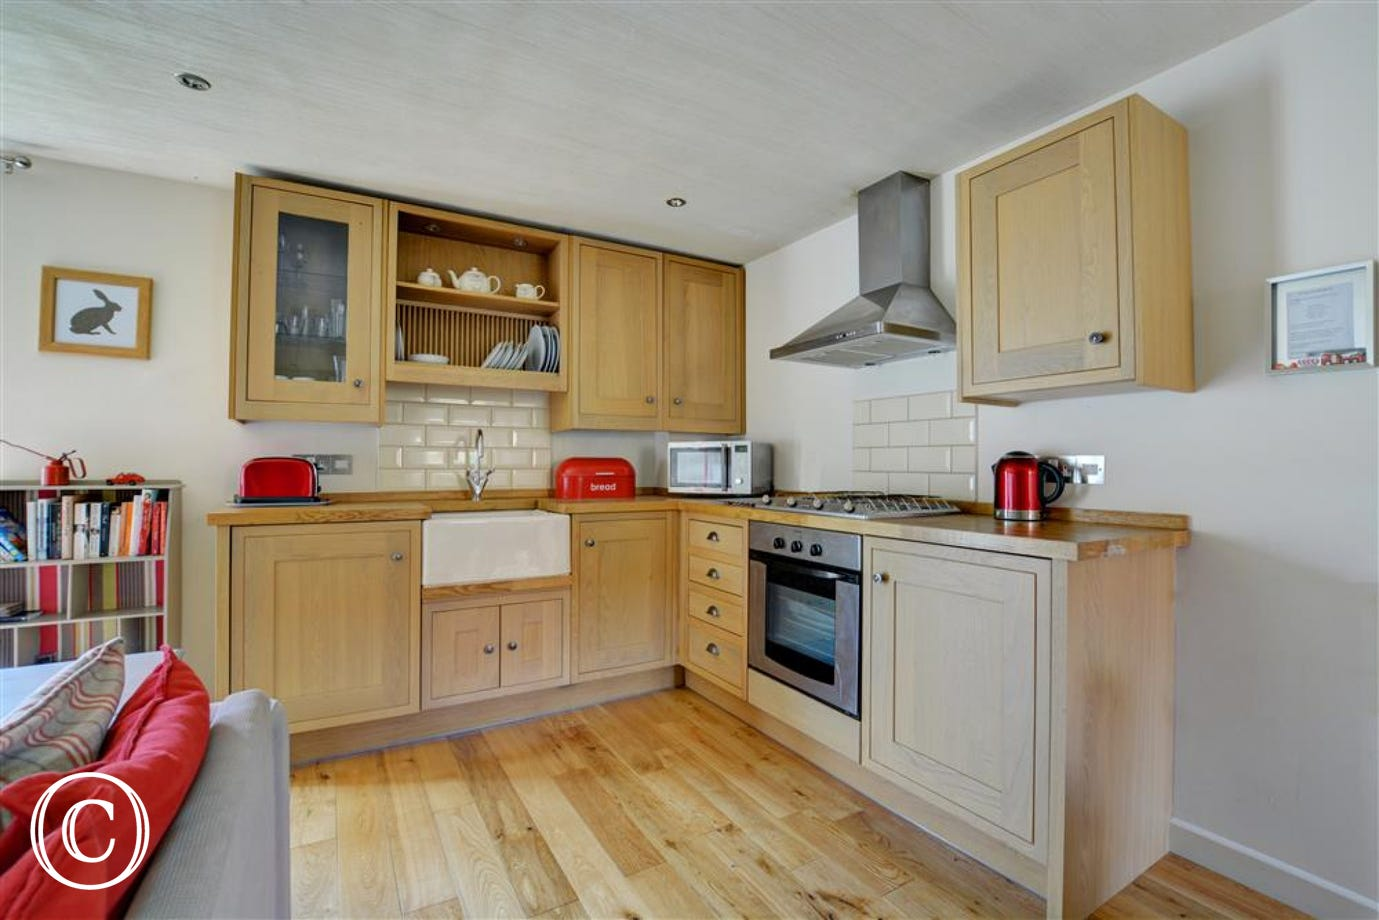 Stunning modern kitchen area, well equipped with plenty of worktop space